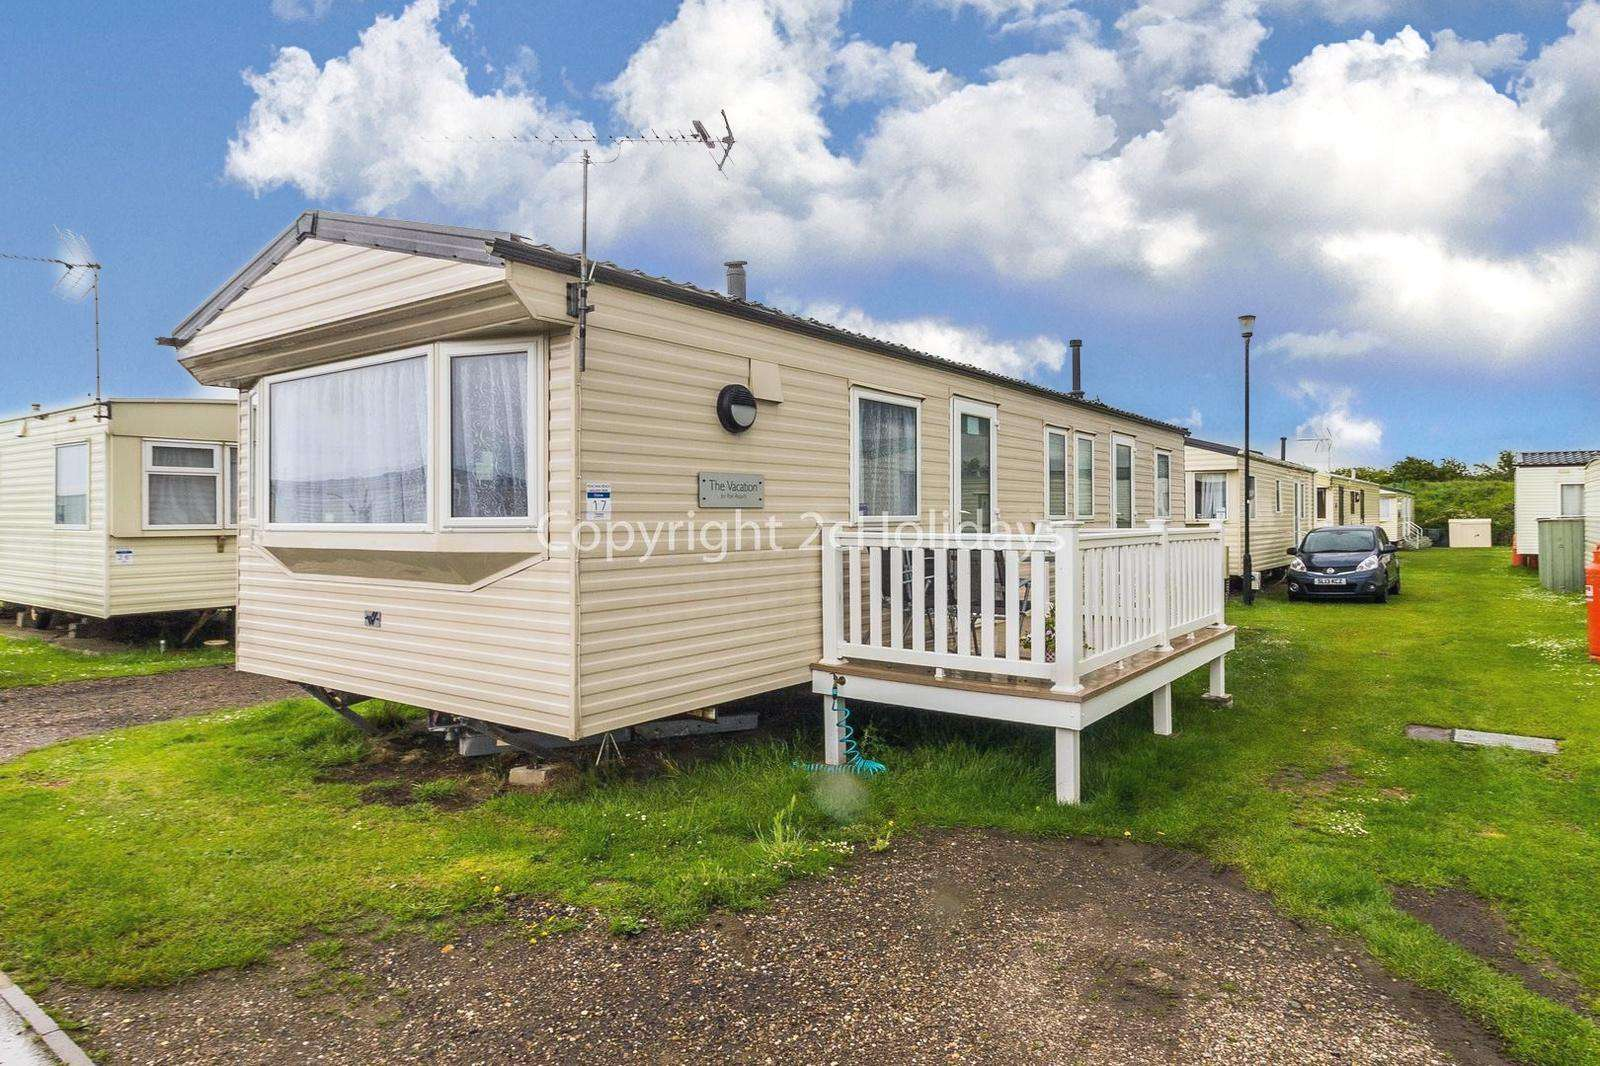 Superb caravan near to the on site amenities - property